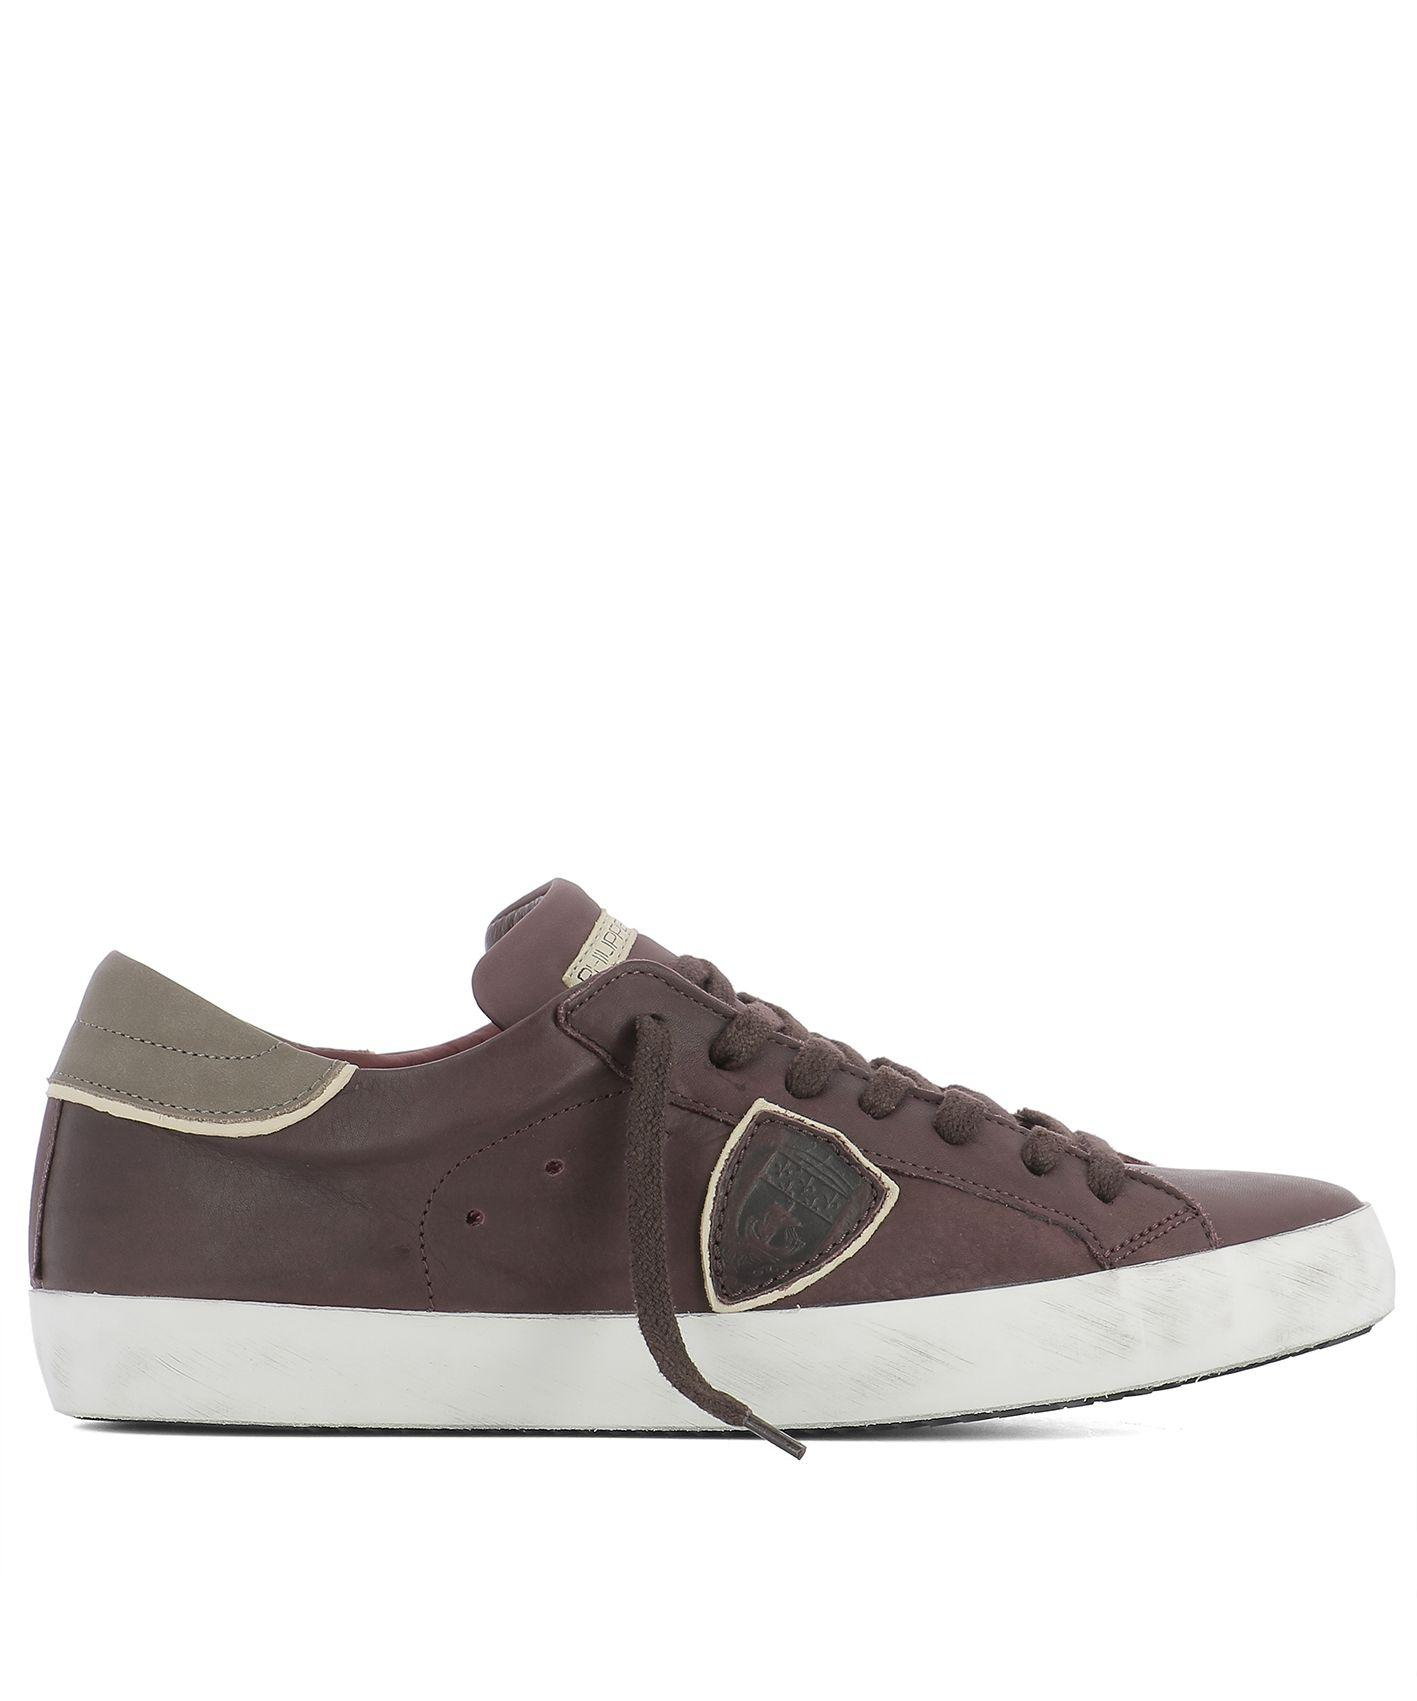 Philippe Model Plum Purple Leather Sneakers